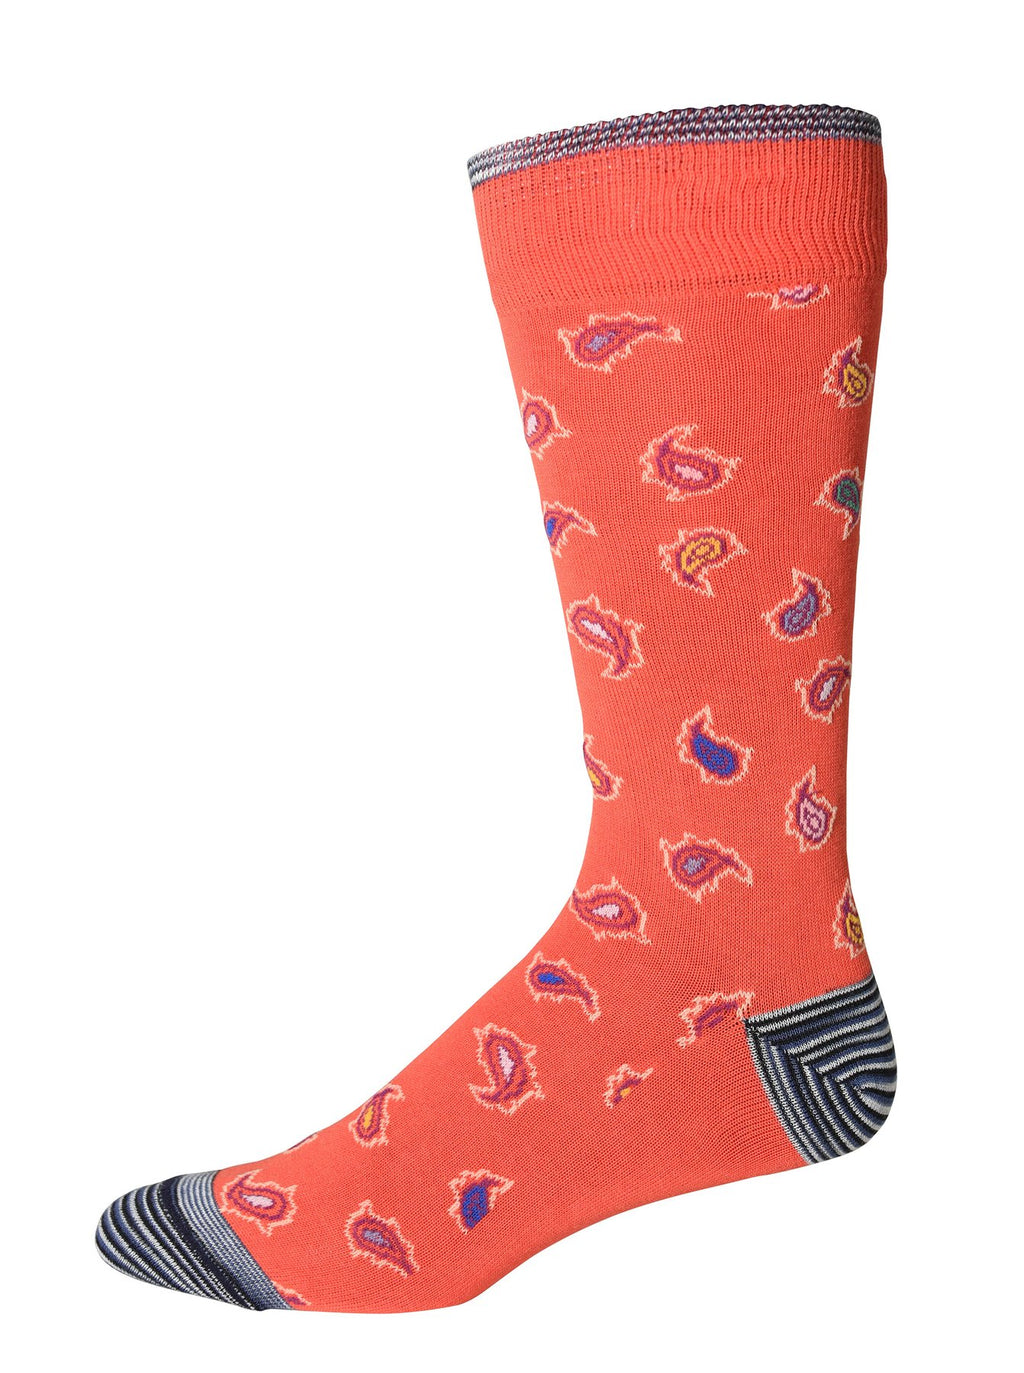 Robert Graham Socks - Camber Red